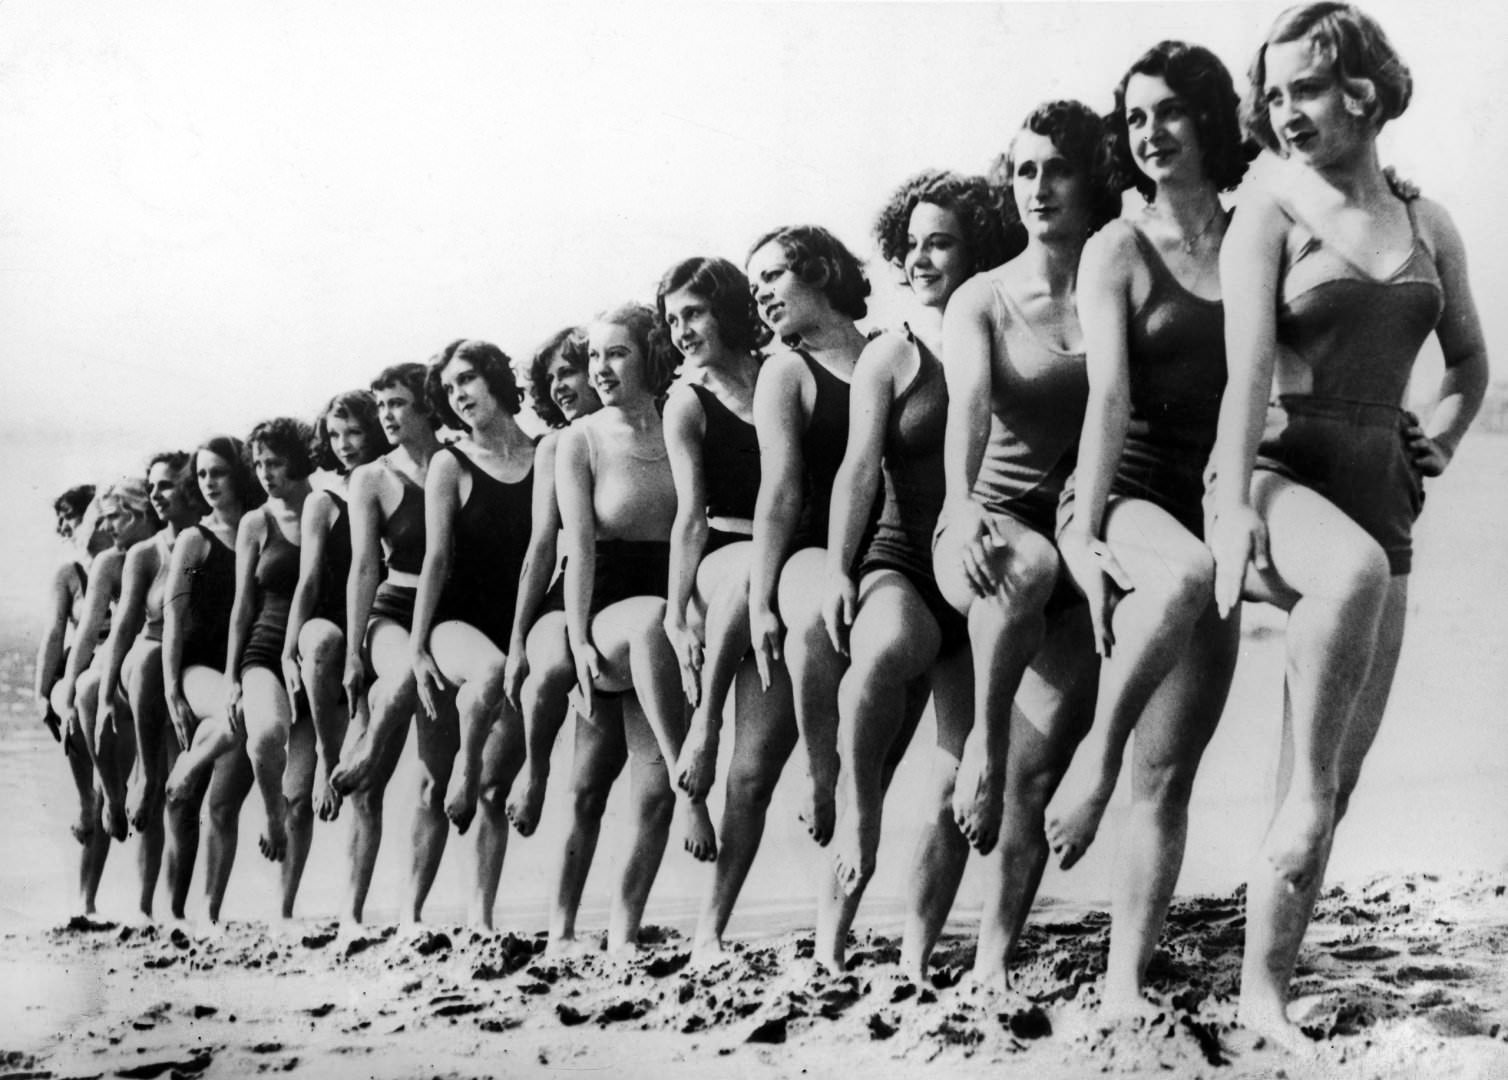 The Latest In swimwear on a beach In California, 1934